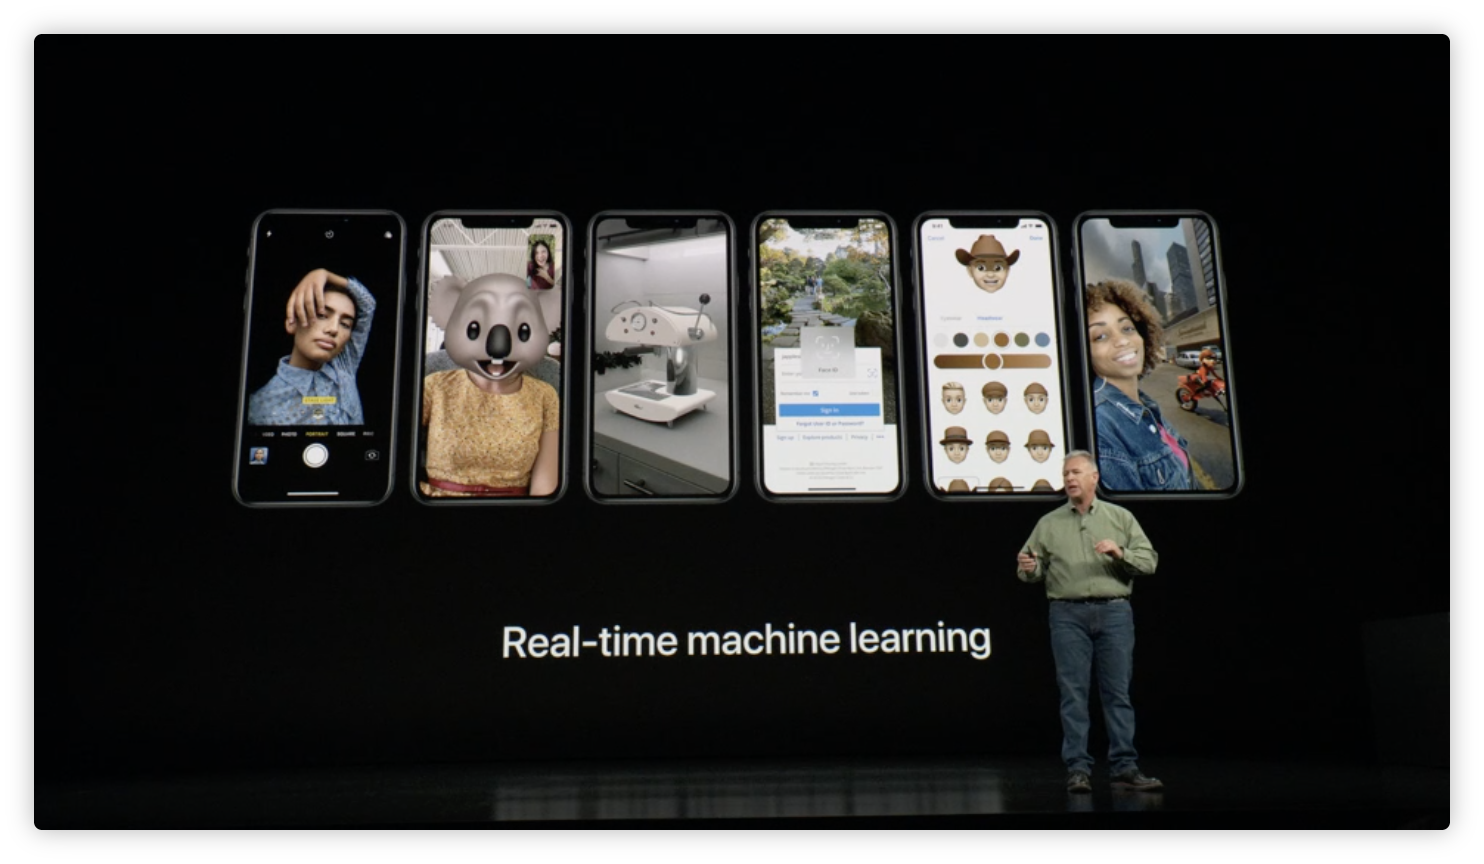 Real-time-machine-learning-iPhone-Xs